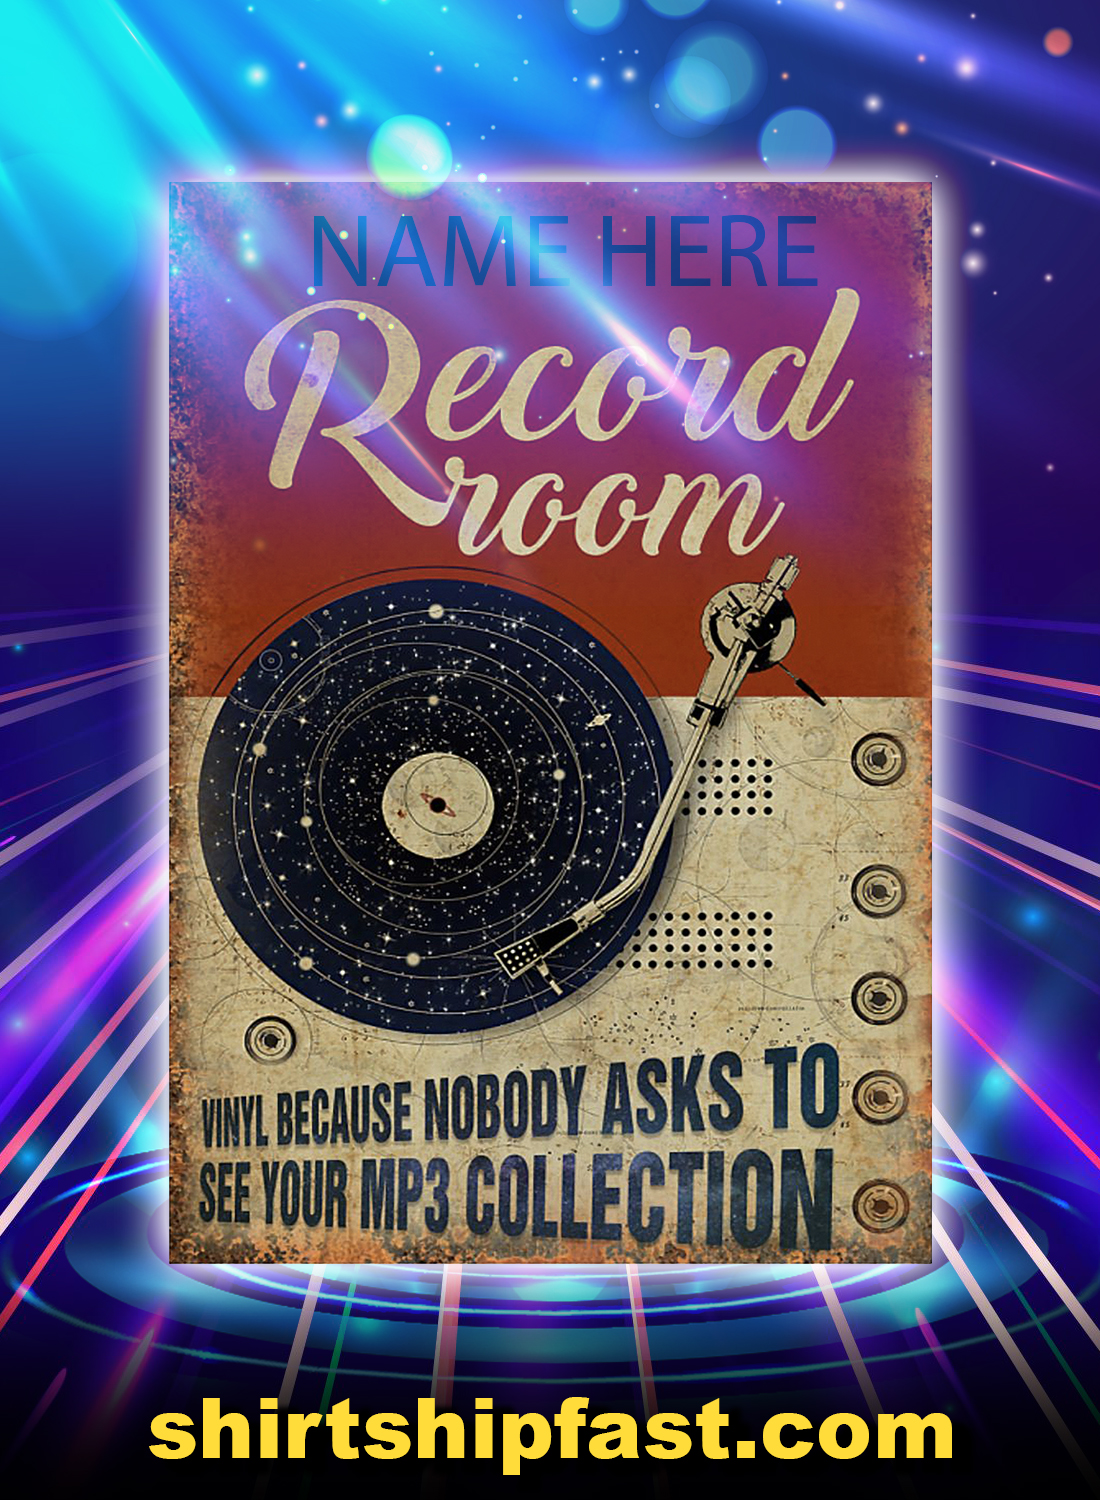 Custom name Record room vinyl because nobody asks to see your mp3 collection poster - A4